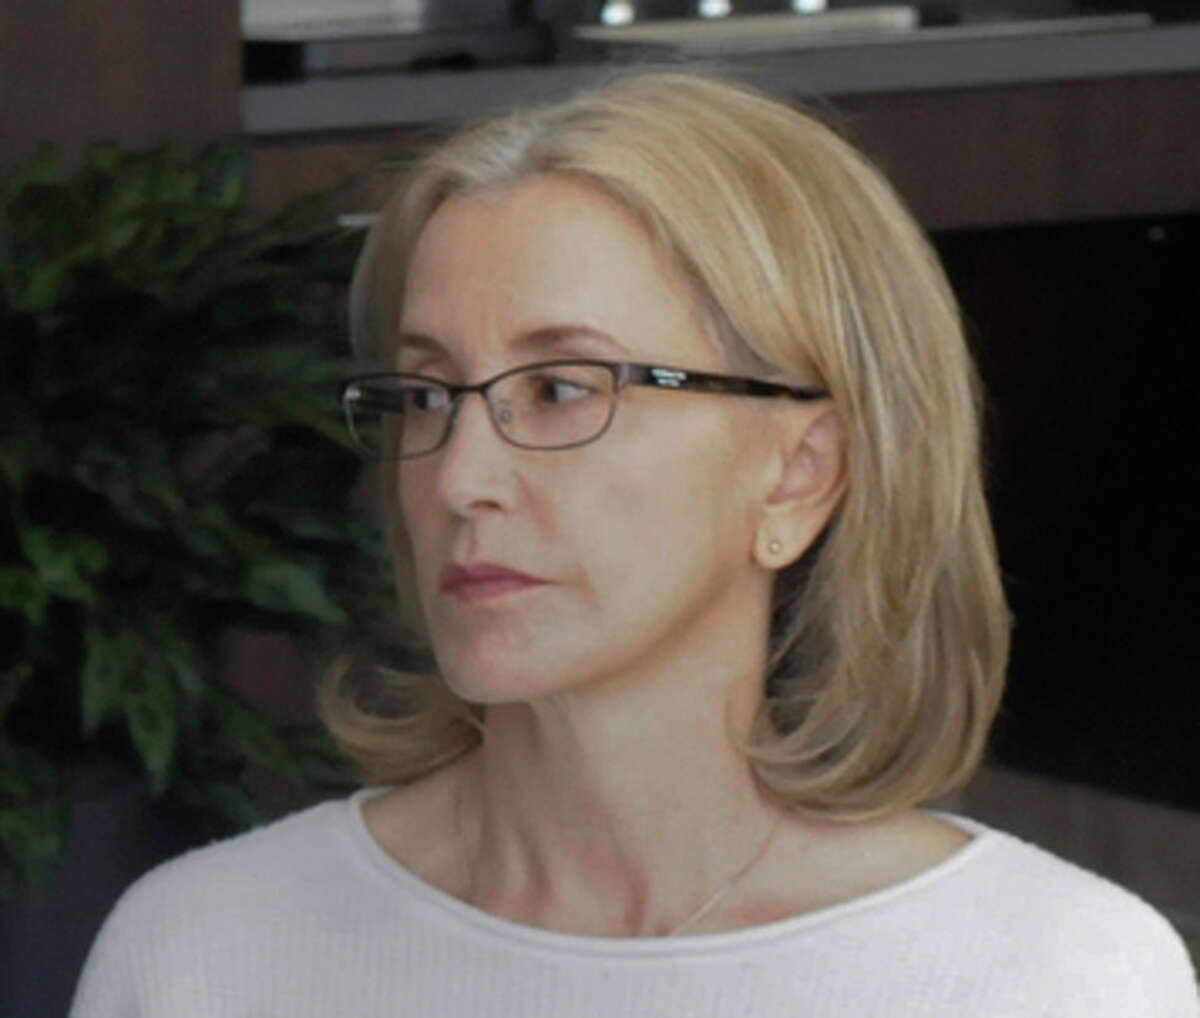 Felicity Huffman plays Barb Hanson in